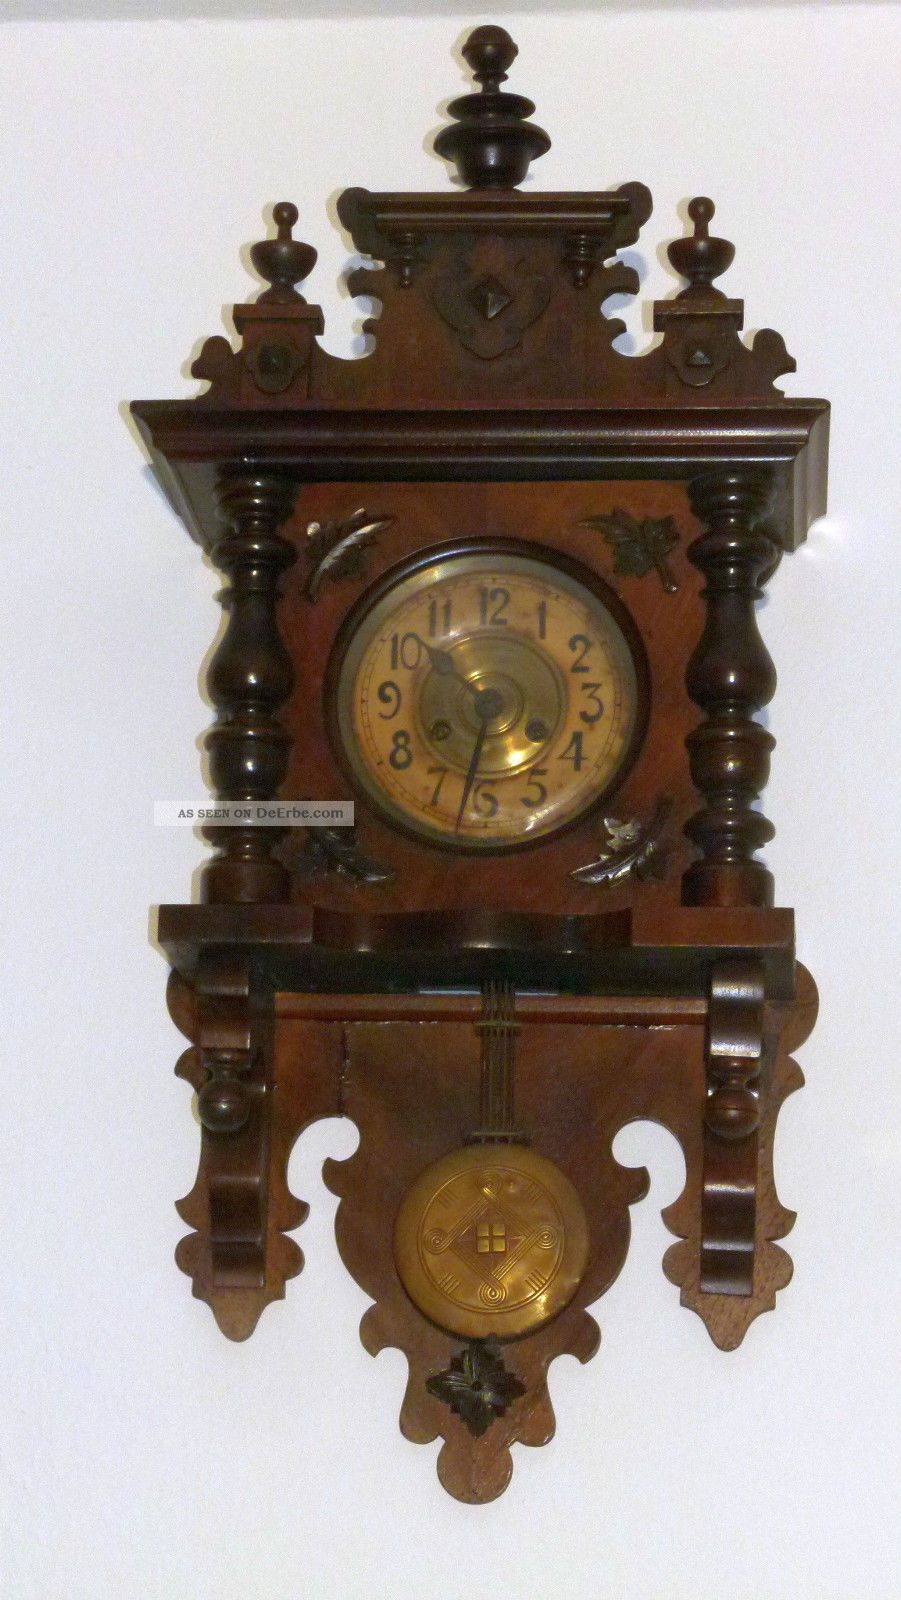 gr nderzeit wanduhr antik holz pendeluhr regulator uhr ca 1900. Black Bedroom Furniture Sets. Home Design Ideas